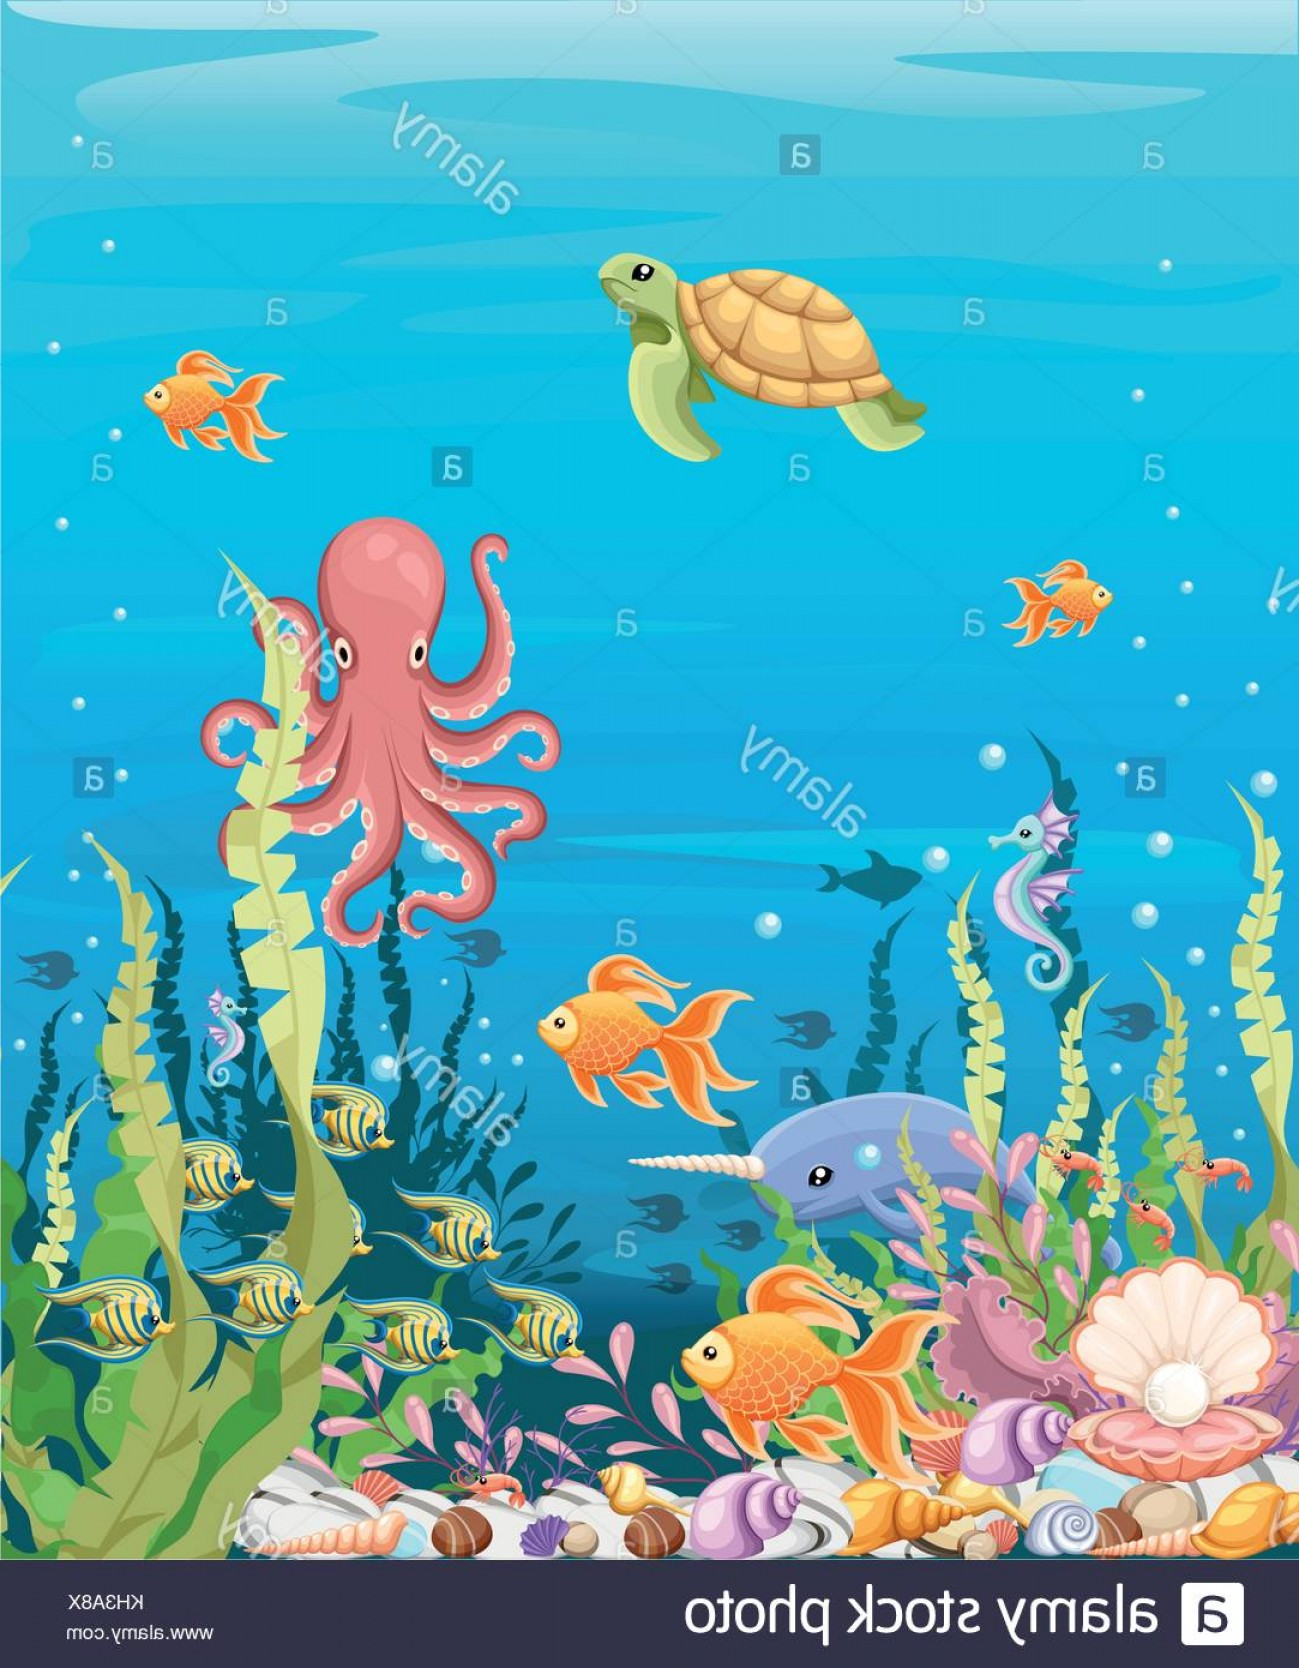 Underwater Sea Vector Art: Stock Photo Marine Life Landscape The Ocean And Underwater World With Different